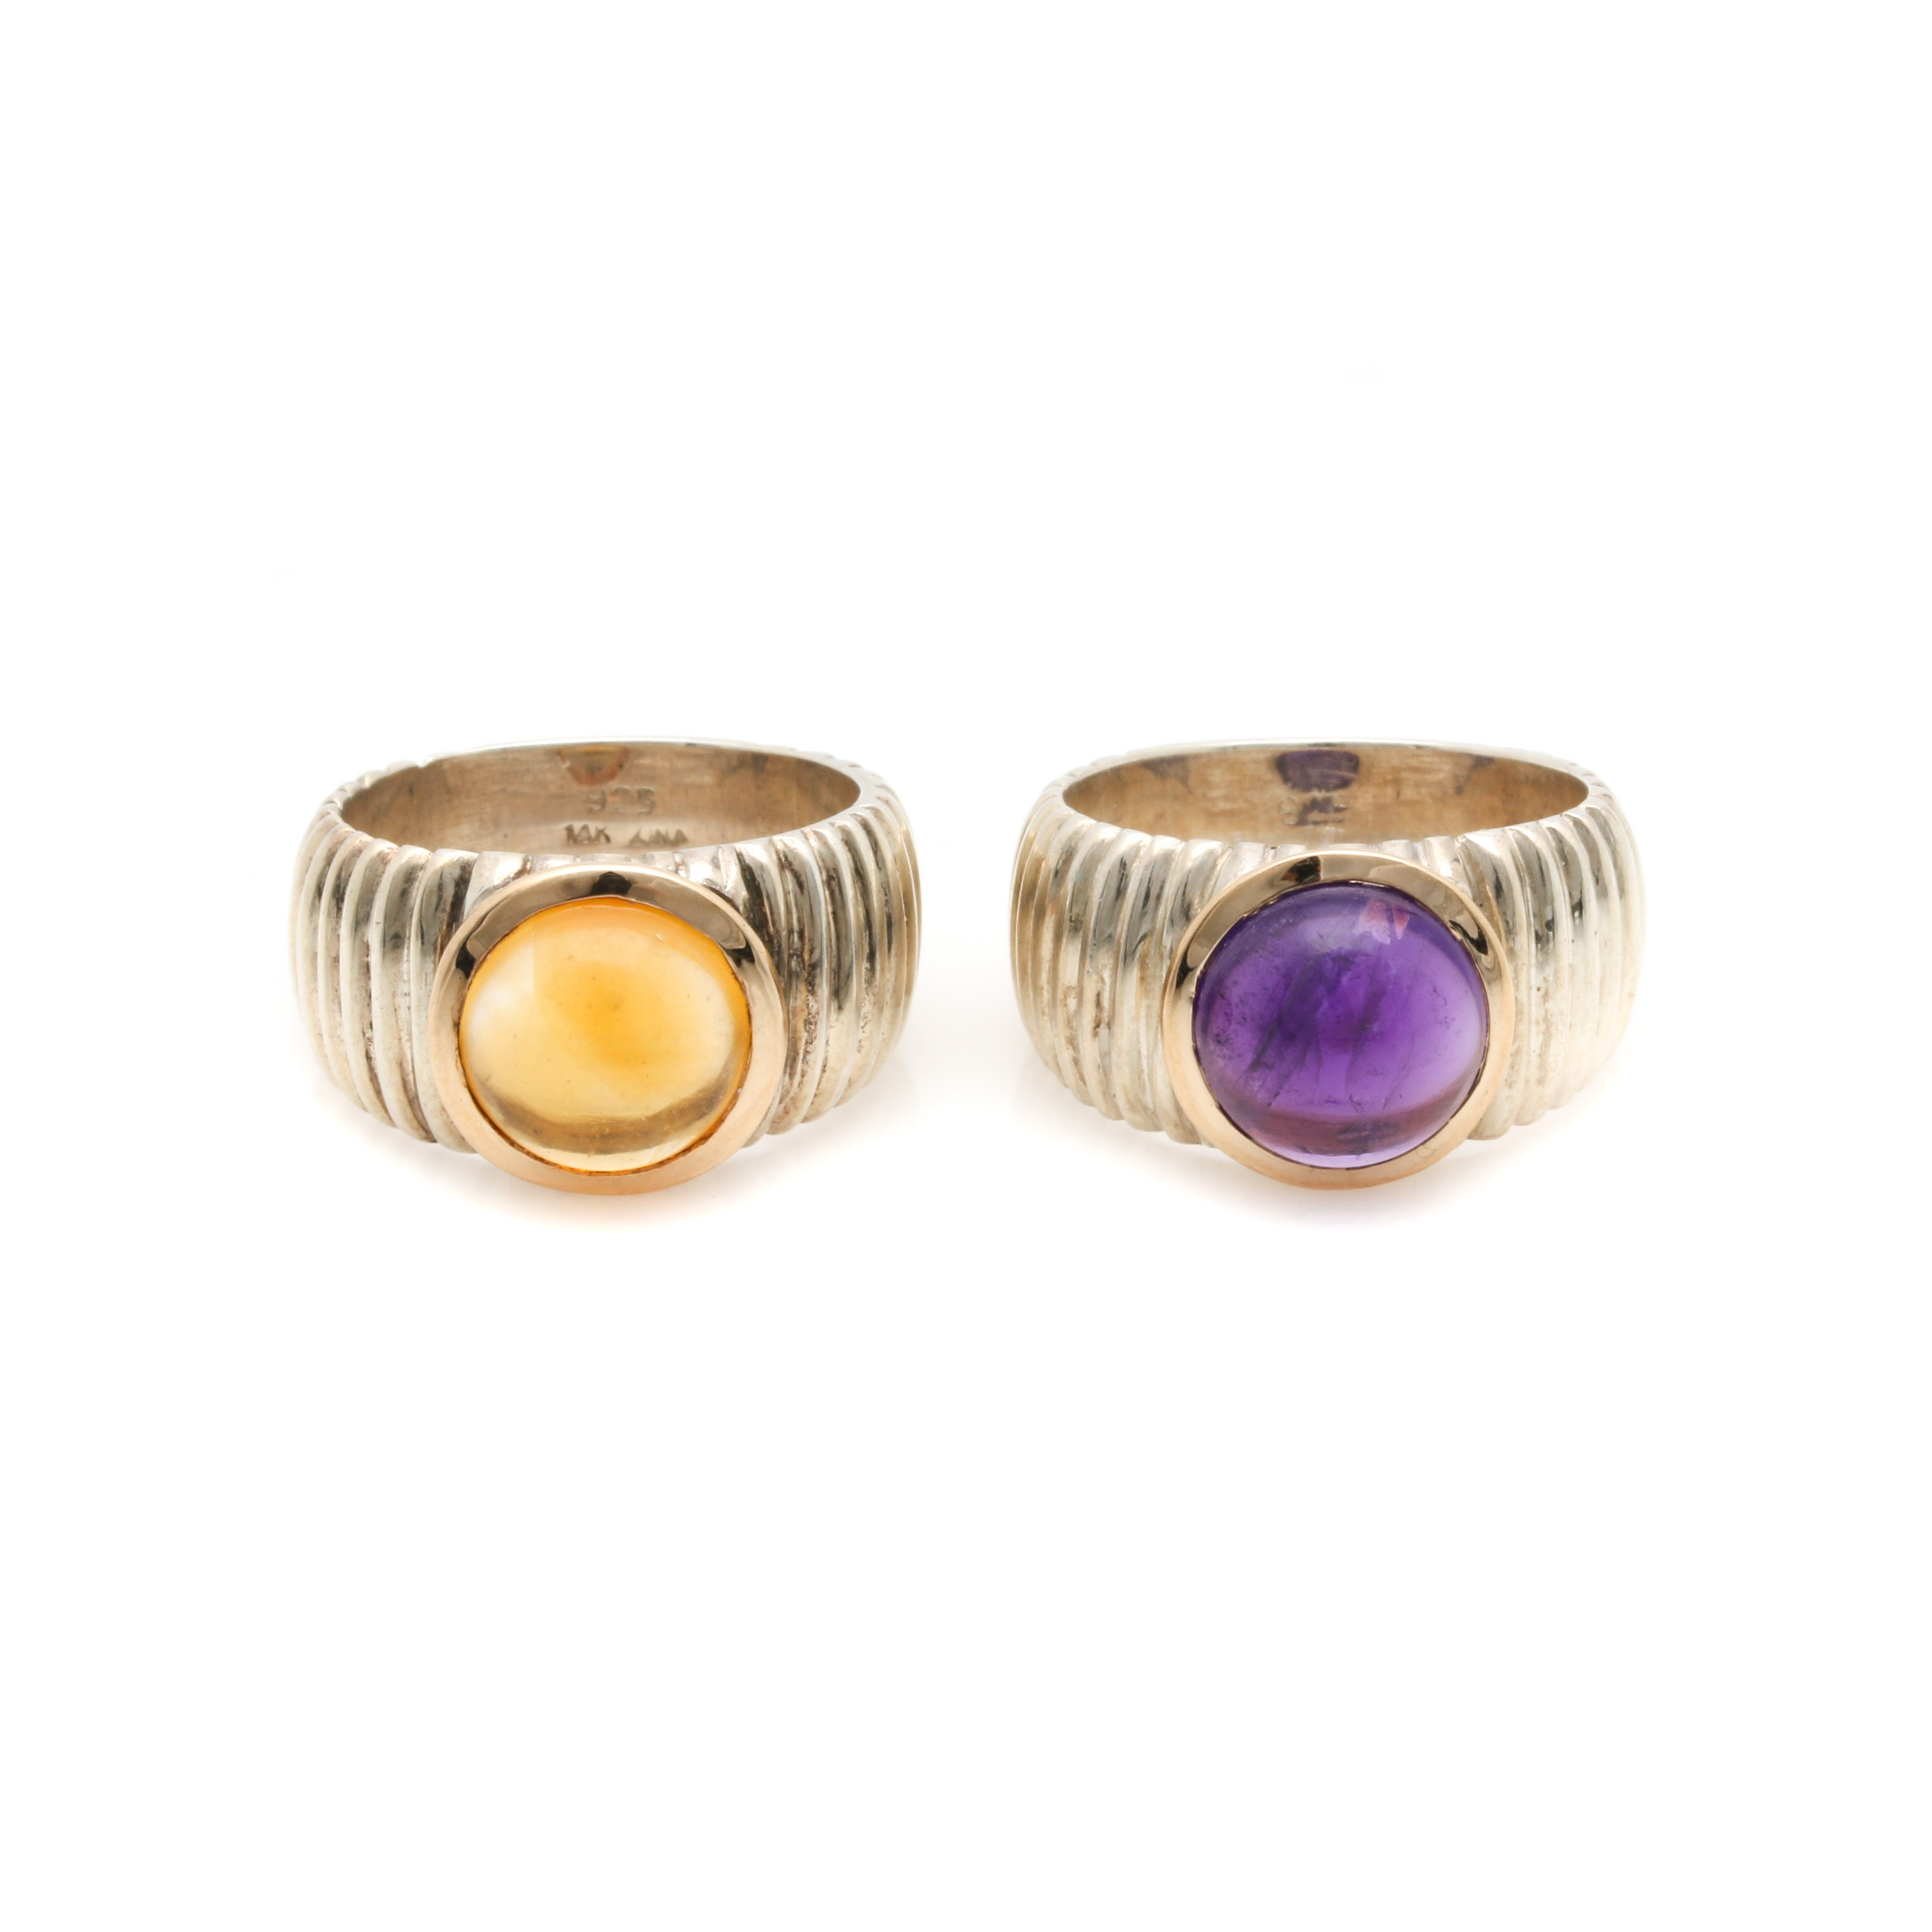 Sterling Silver Amethyst and Citrine Rings With 14K Yellow Gold Accents